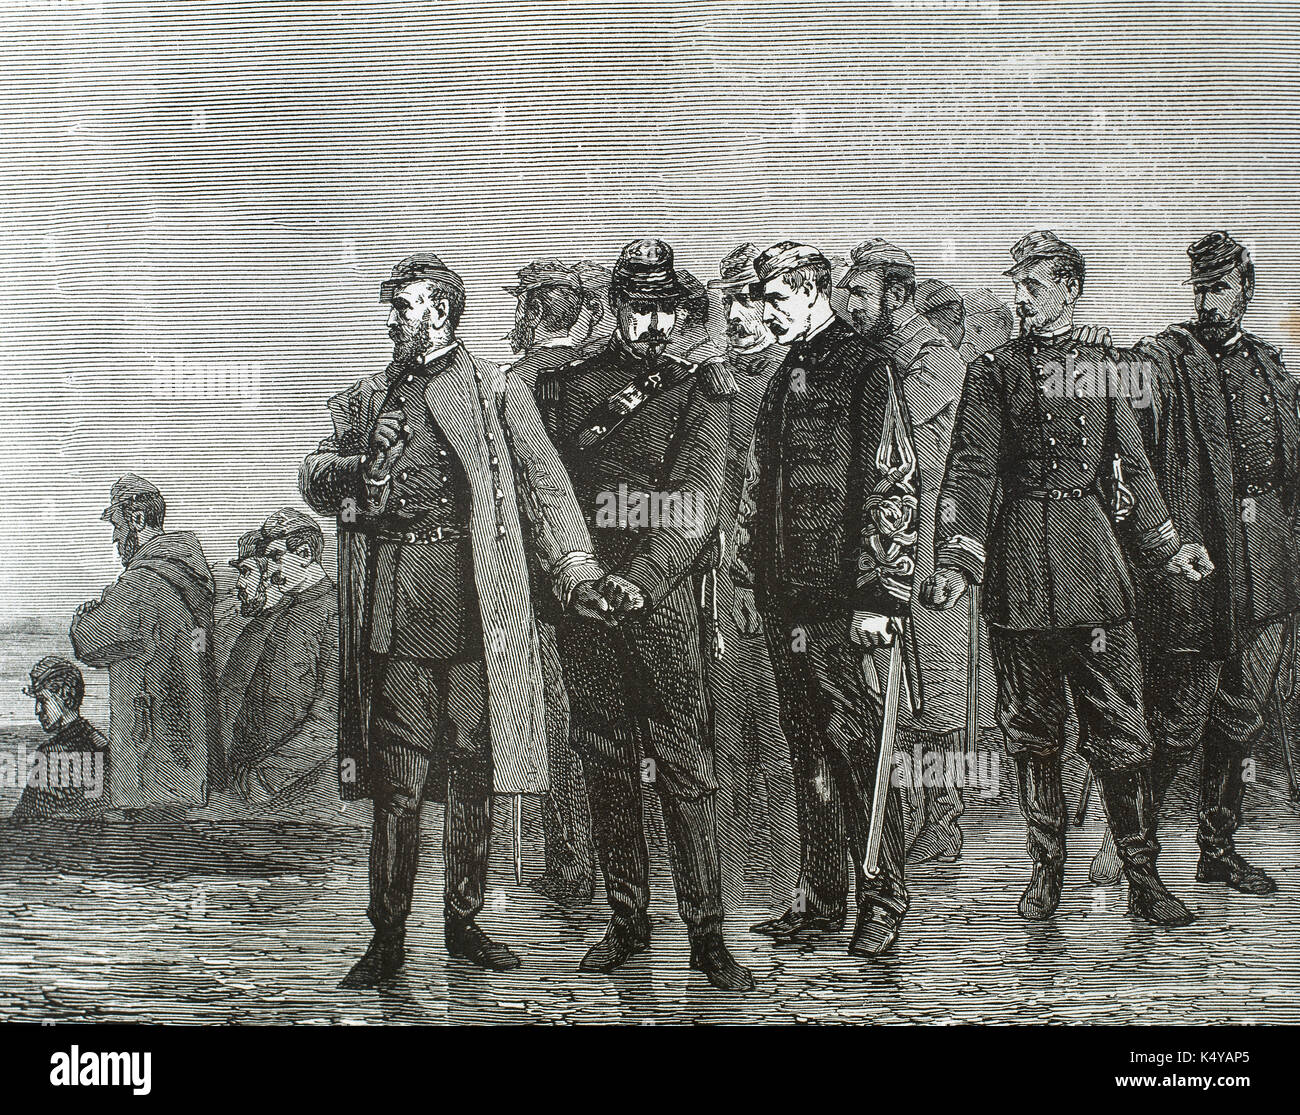 Franco-Prussian War (1870-1871). Between August and October 1870, the French suffered in Metz a siege which ended with the capitulation of General Bazaine and his troops. Engraving. 'Historia Universal', 1881. - Stock Image